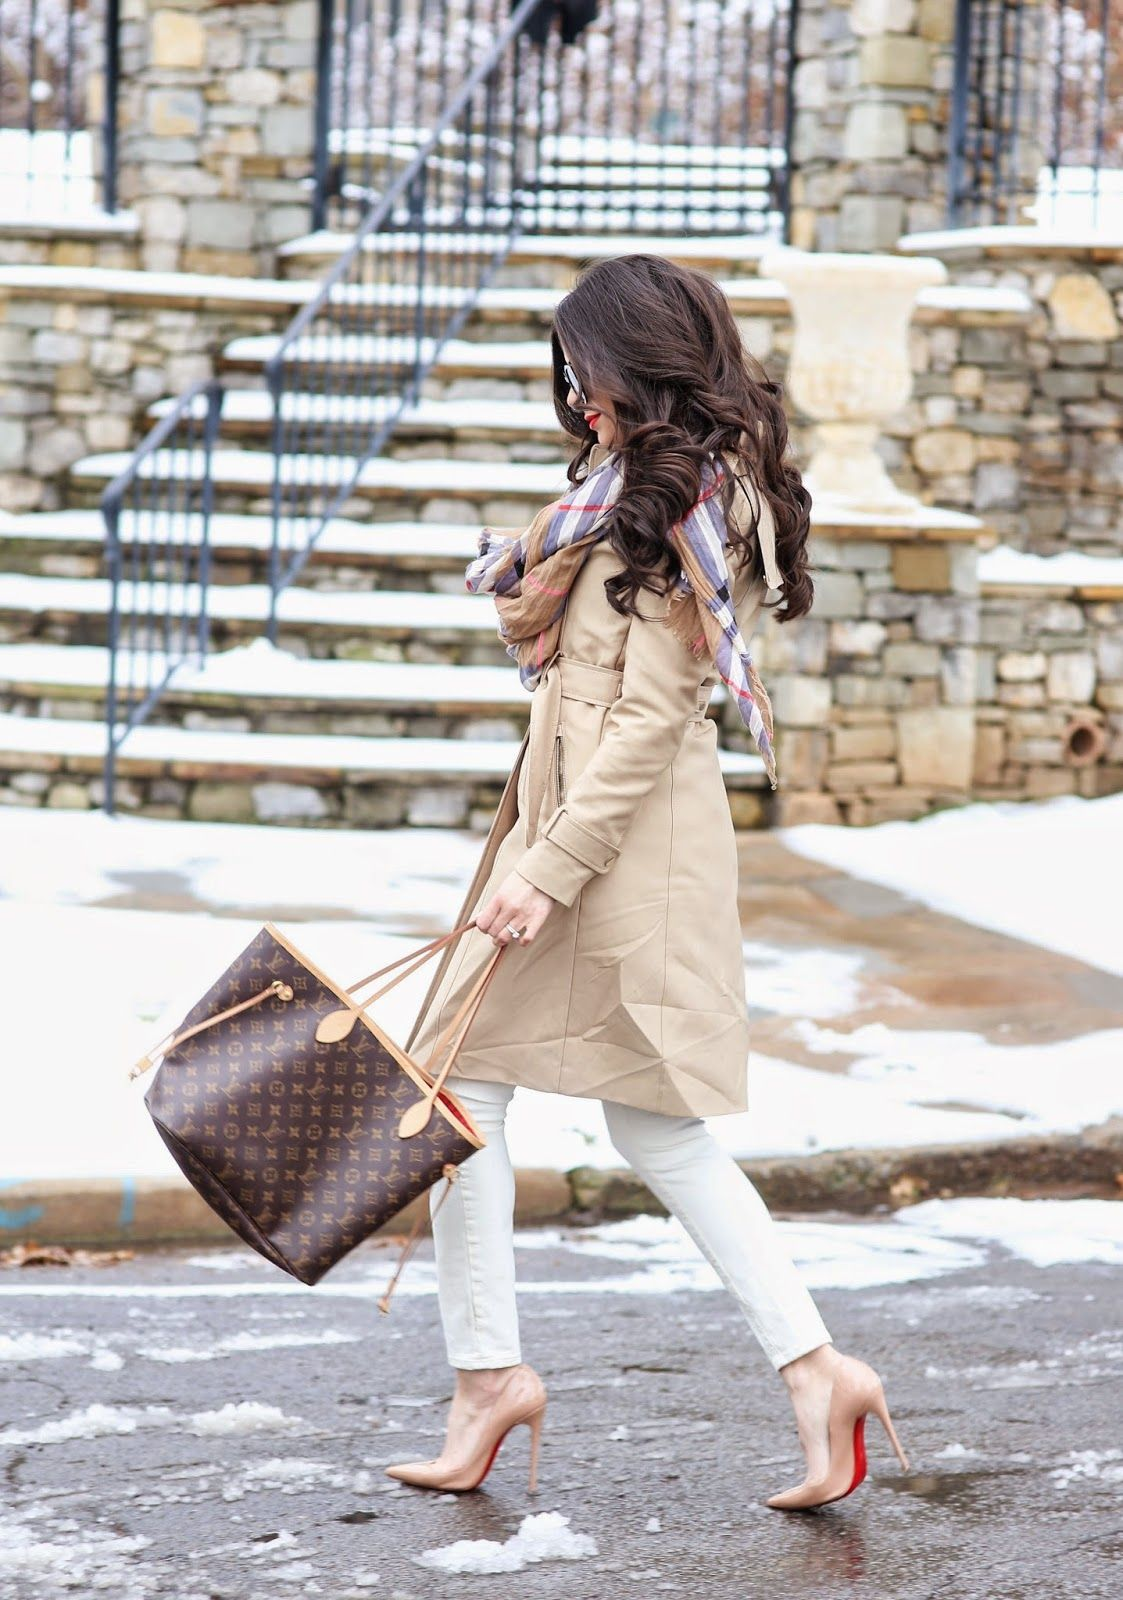 Clothes outfit for woman   teens   dates   stylish   casual   fall   spring    winter   classic   casual   fun   cute  sparkle   summer  Candice Wicks f6fe7d33e6c4e